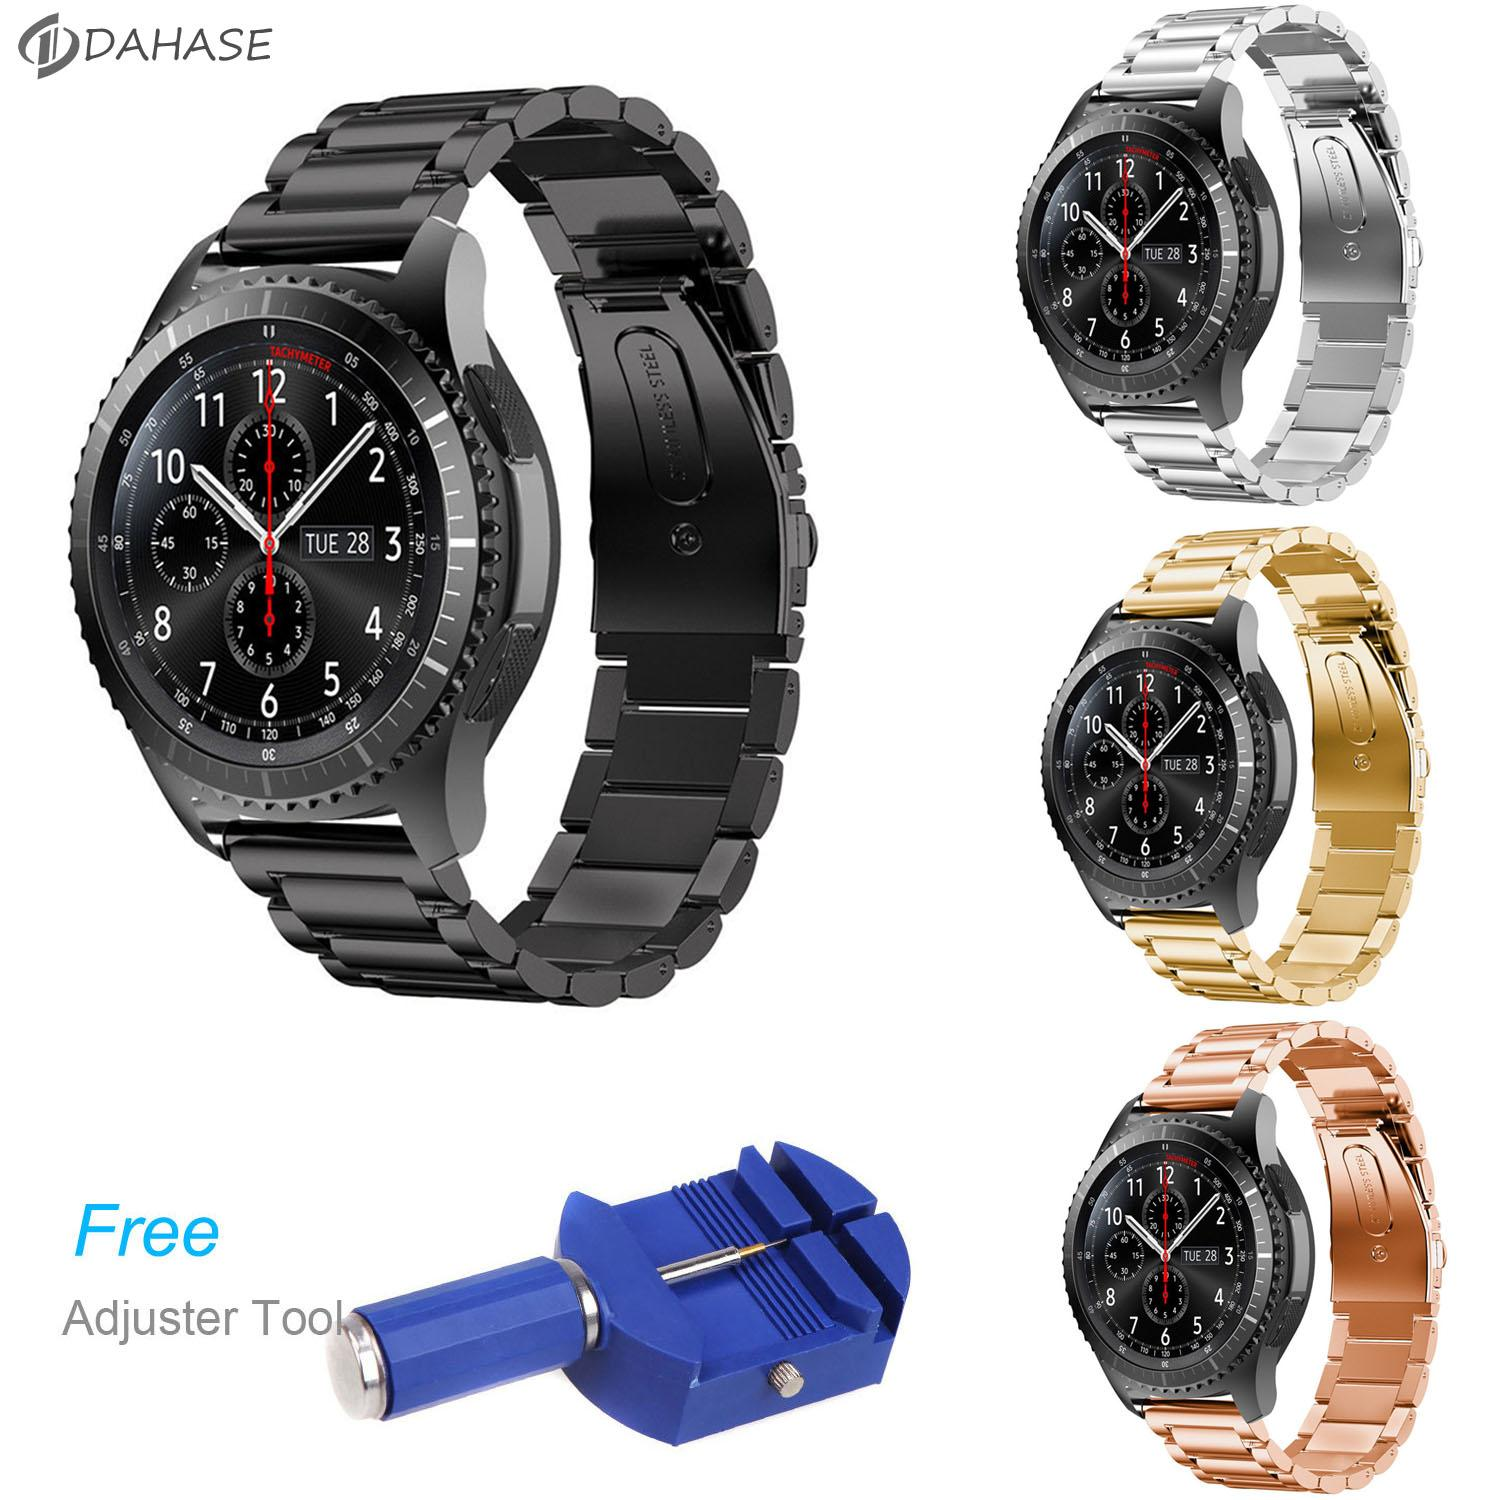 Dahase Stainless Steel Watch Band For Samsung Gear S3 Frontier Strap For Gear S3 Classic Smart Watch Bracelet With Adjust Tool Alligator Watch Bands Debeer